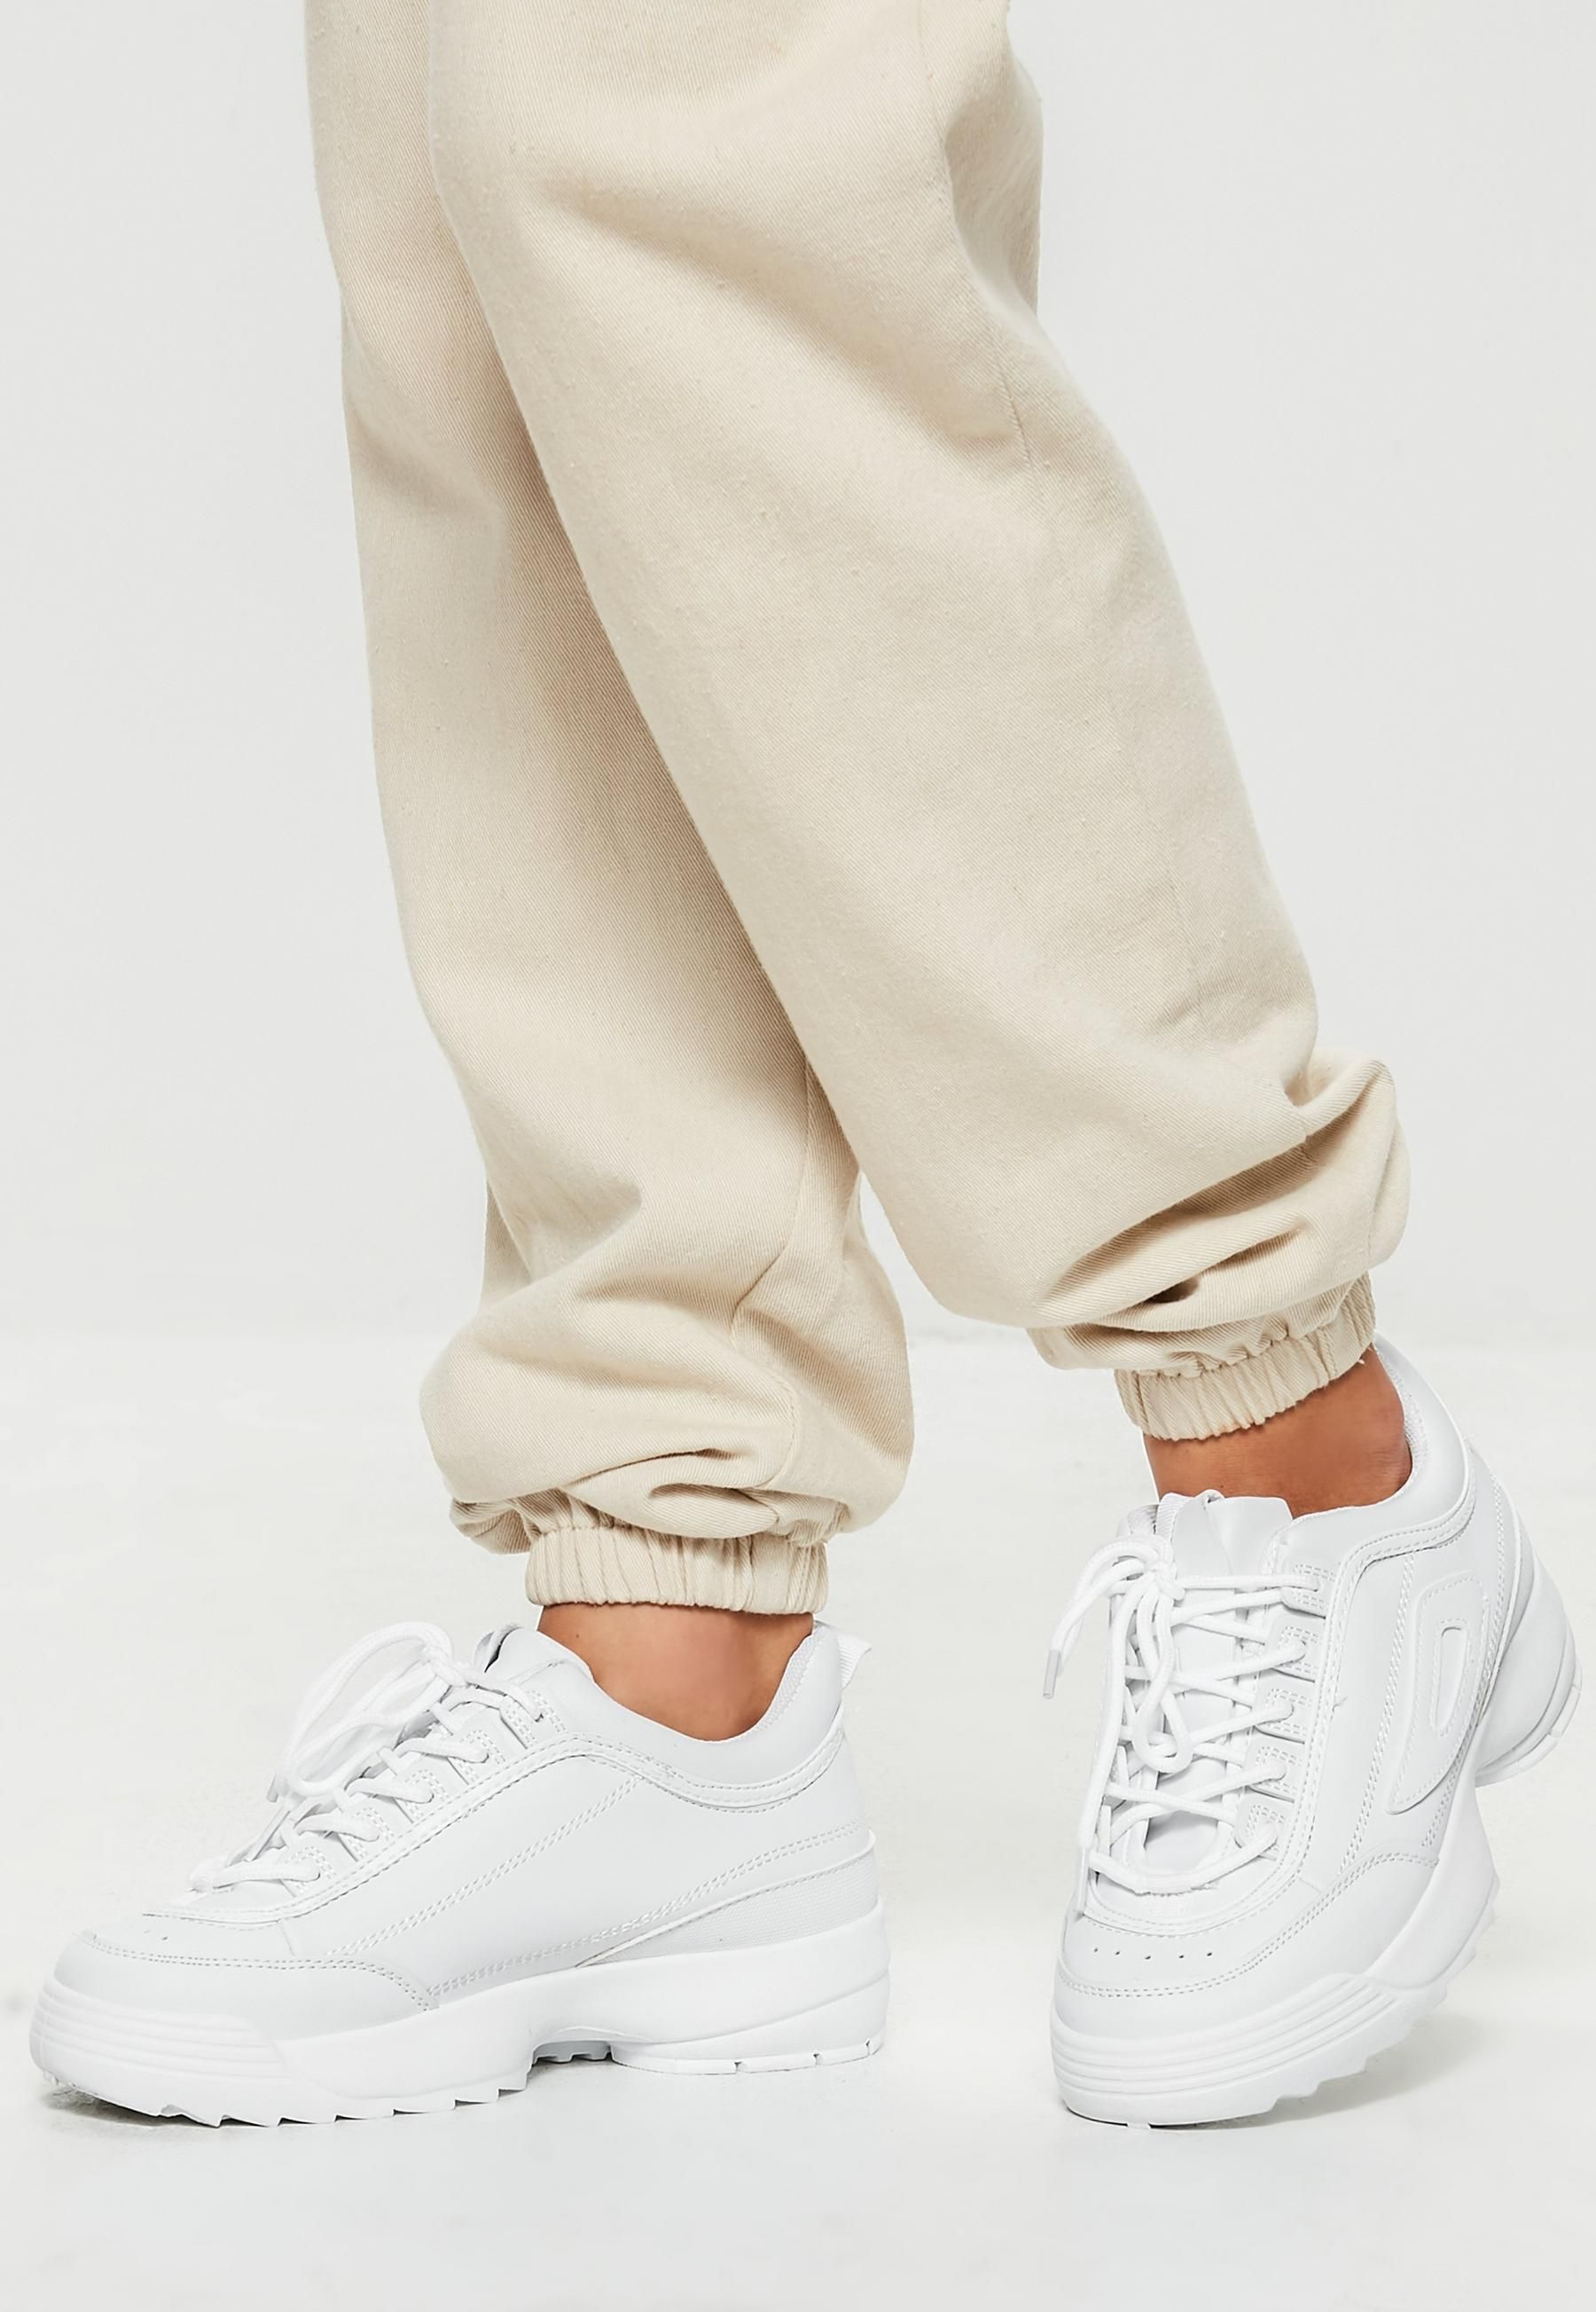 cheaper 26924 9391a White Chunky Sole Minimal Sneakers   Missguided White Sneakers Outfit, Shoes  With Jeans, Shoes